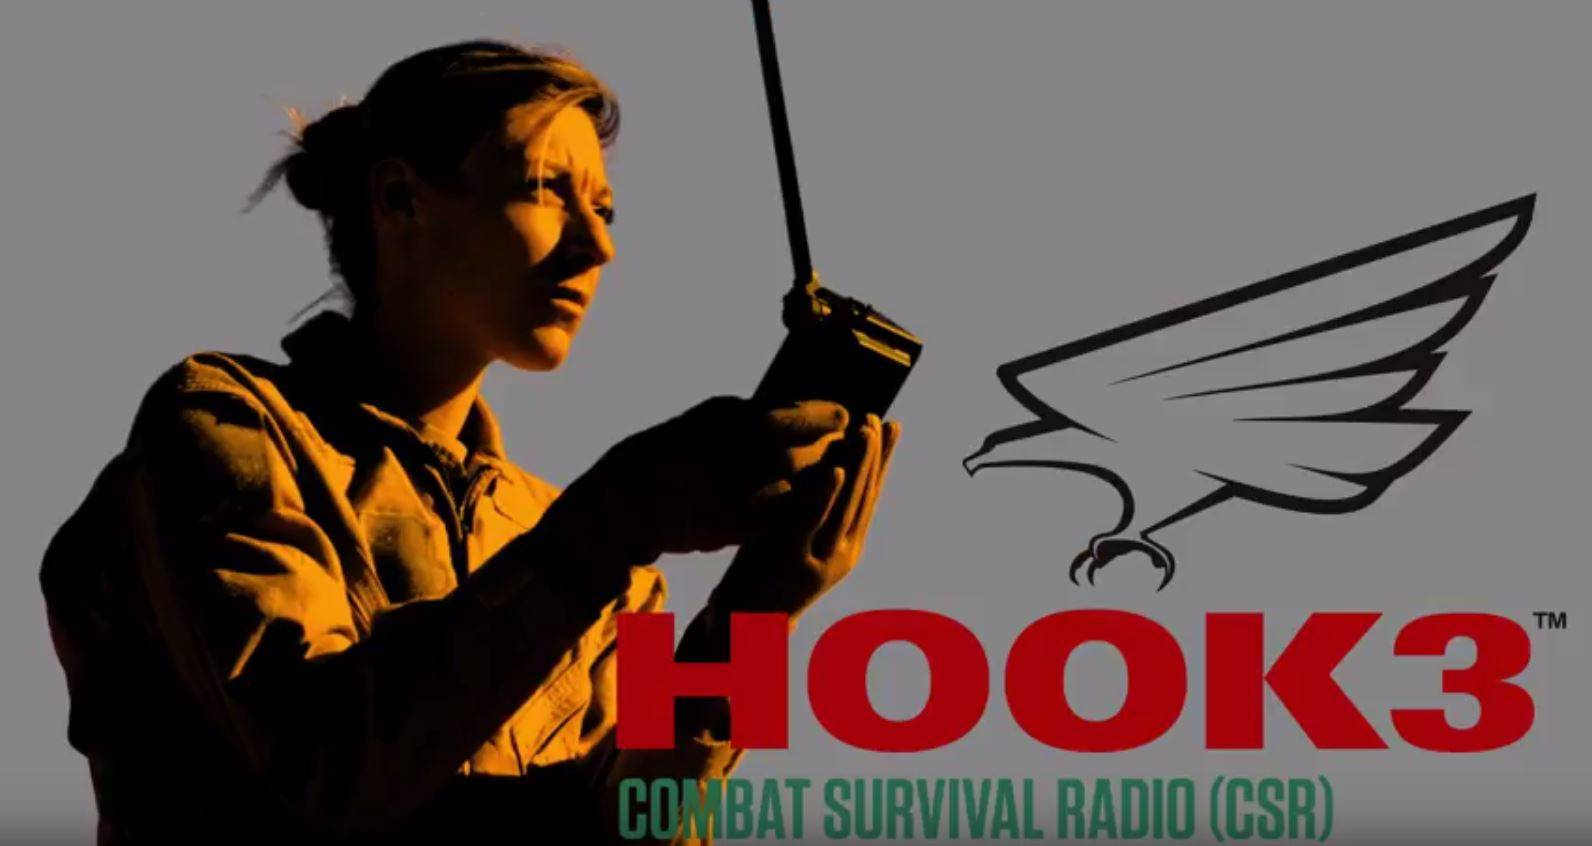 Radios - HOOK3 Combat Survival Radio Video Thumbnail